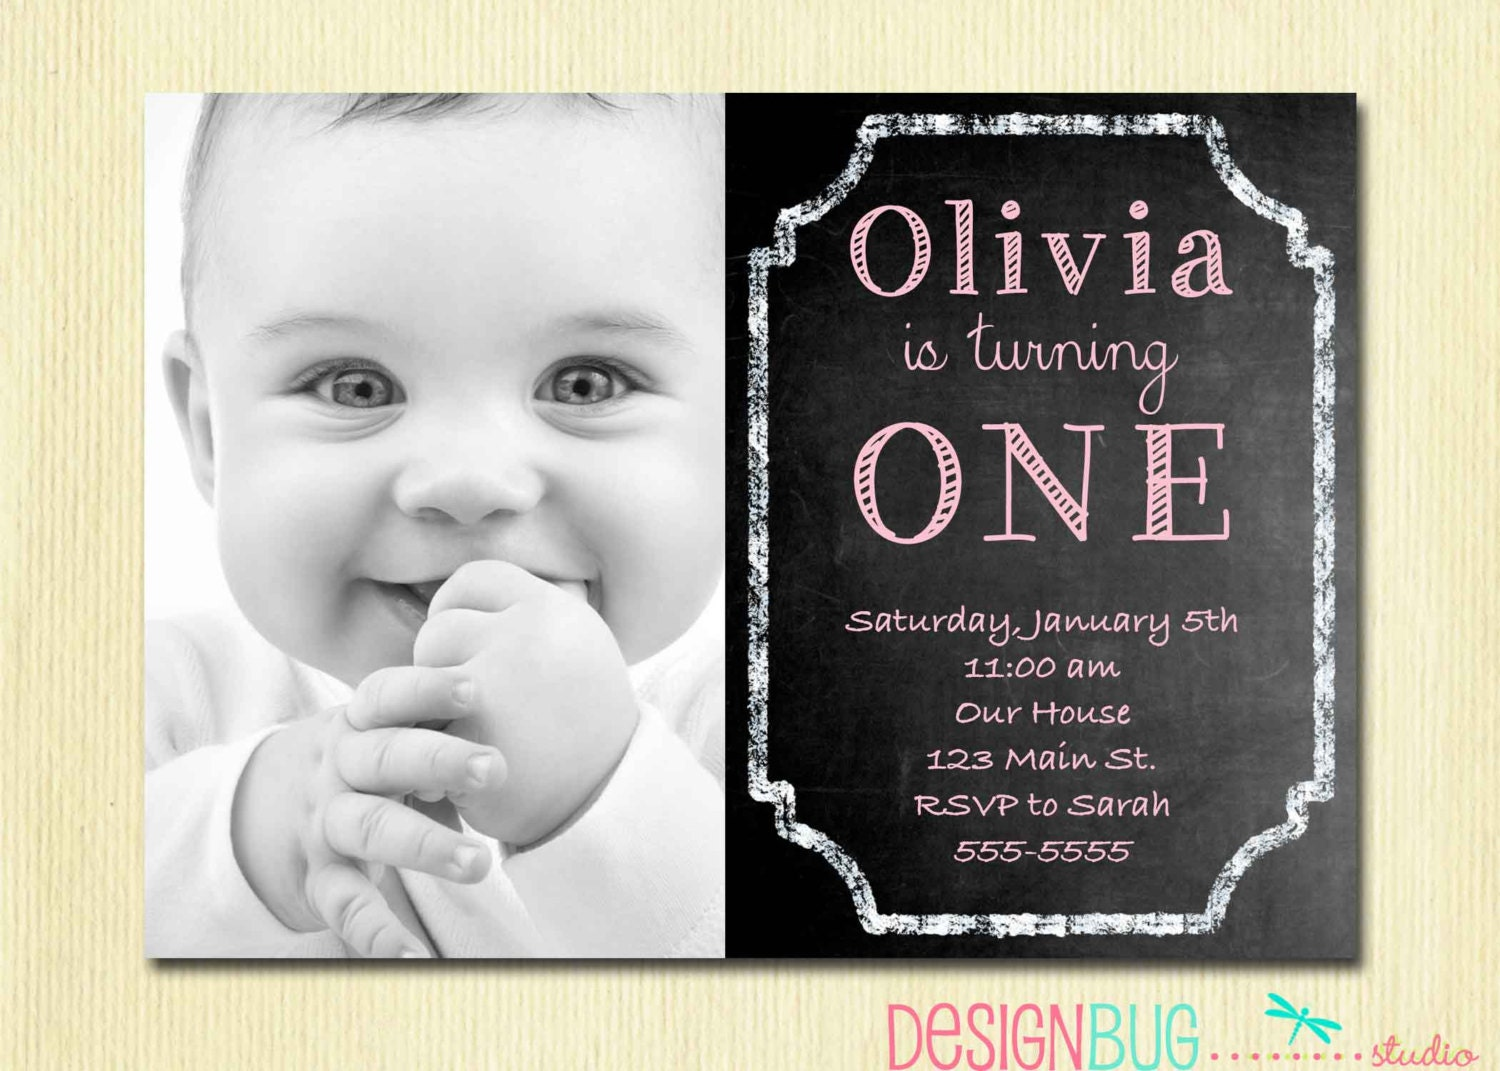 year old birthday  etsy, invitation samples